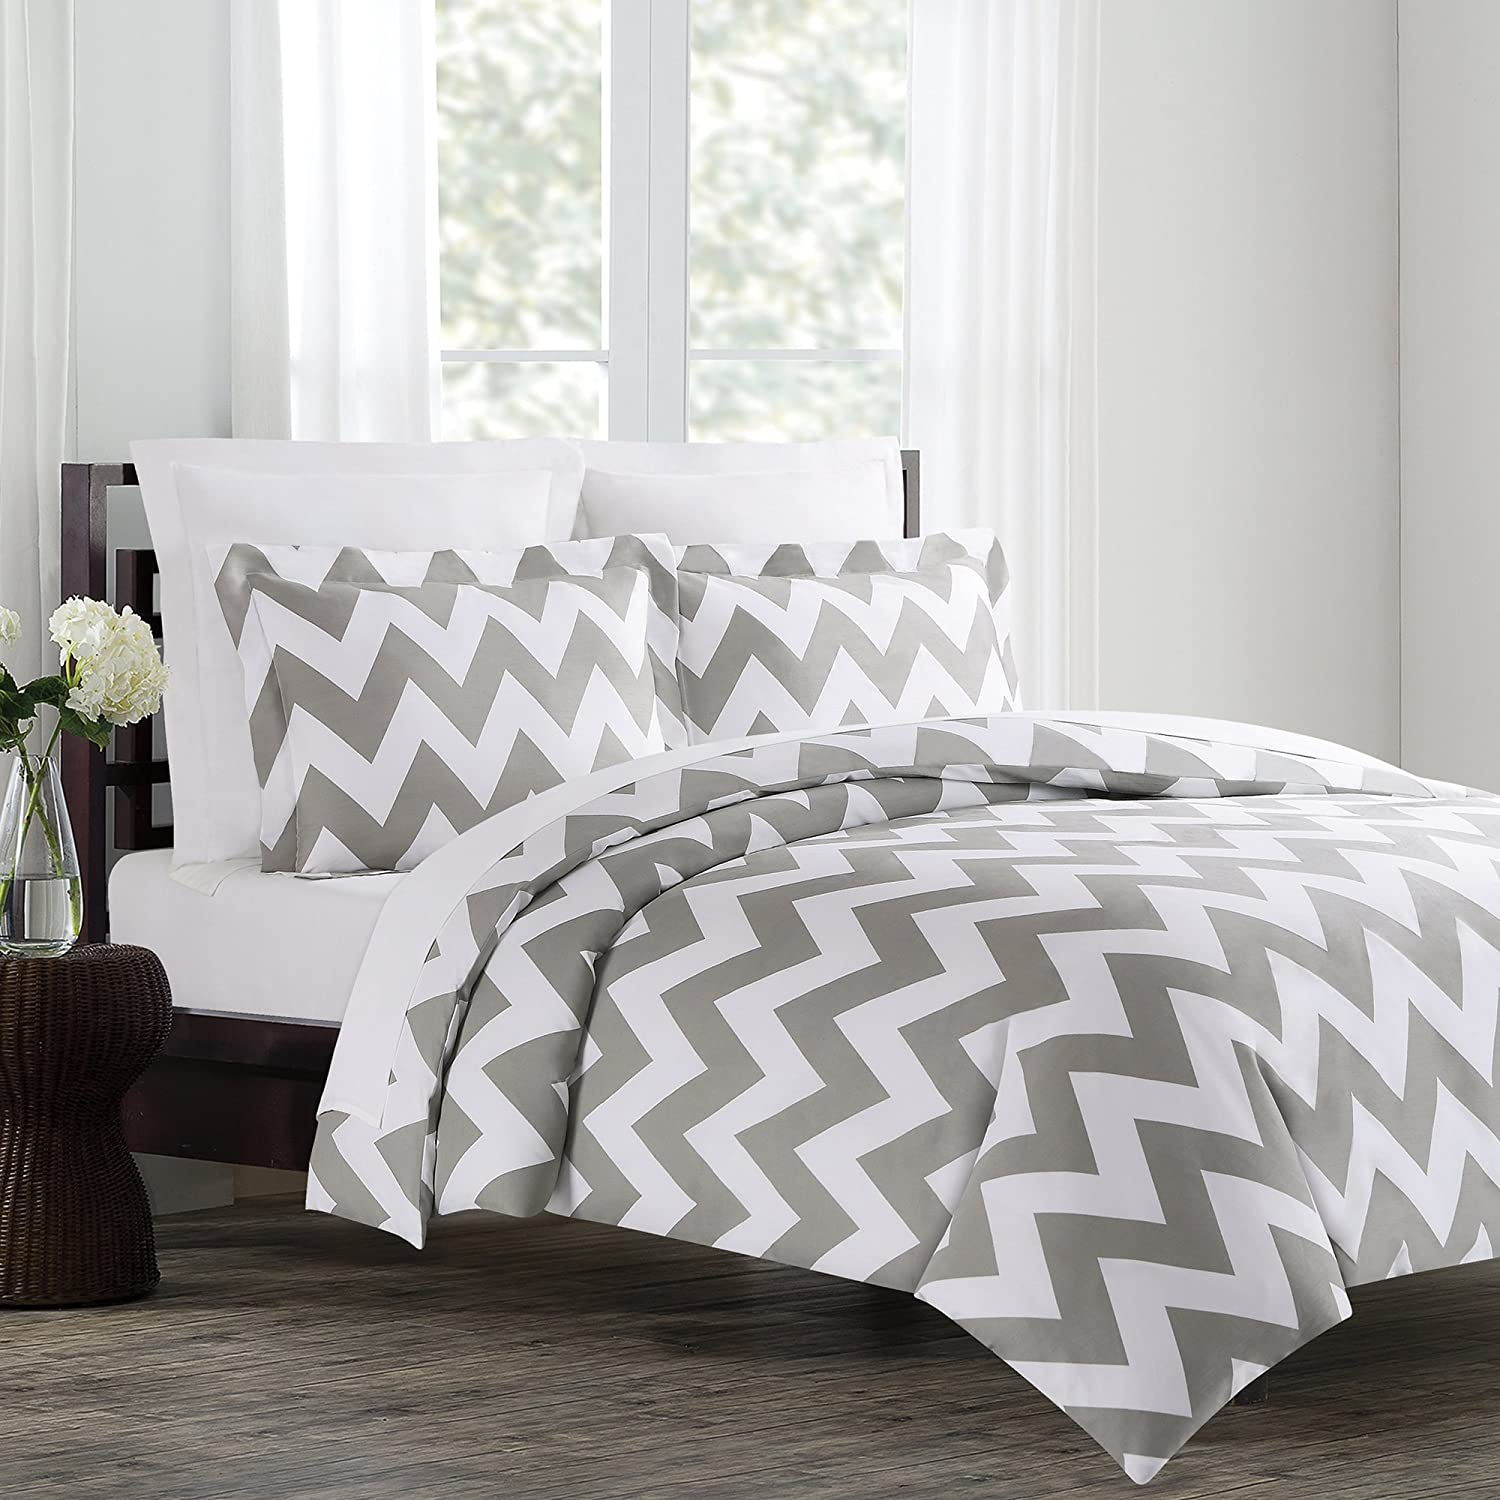 Amazon Echelon Home Chevron Duvet Cover Set Full Queen